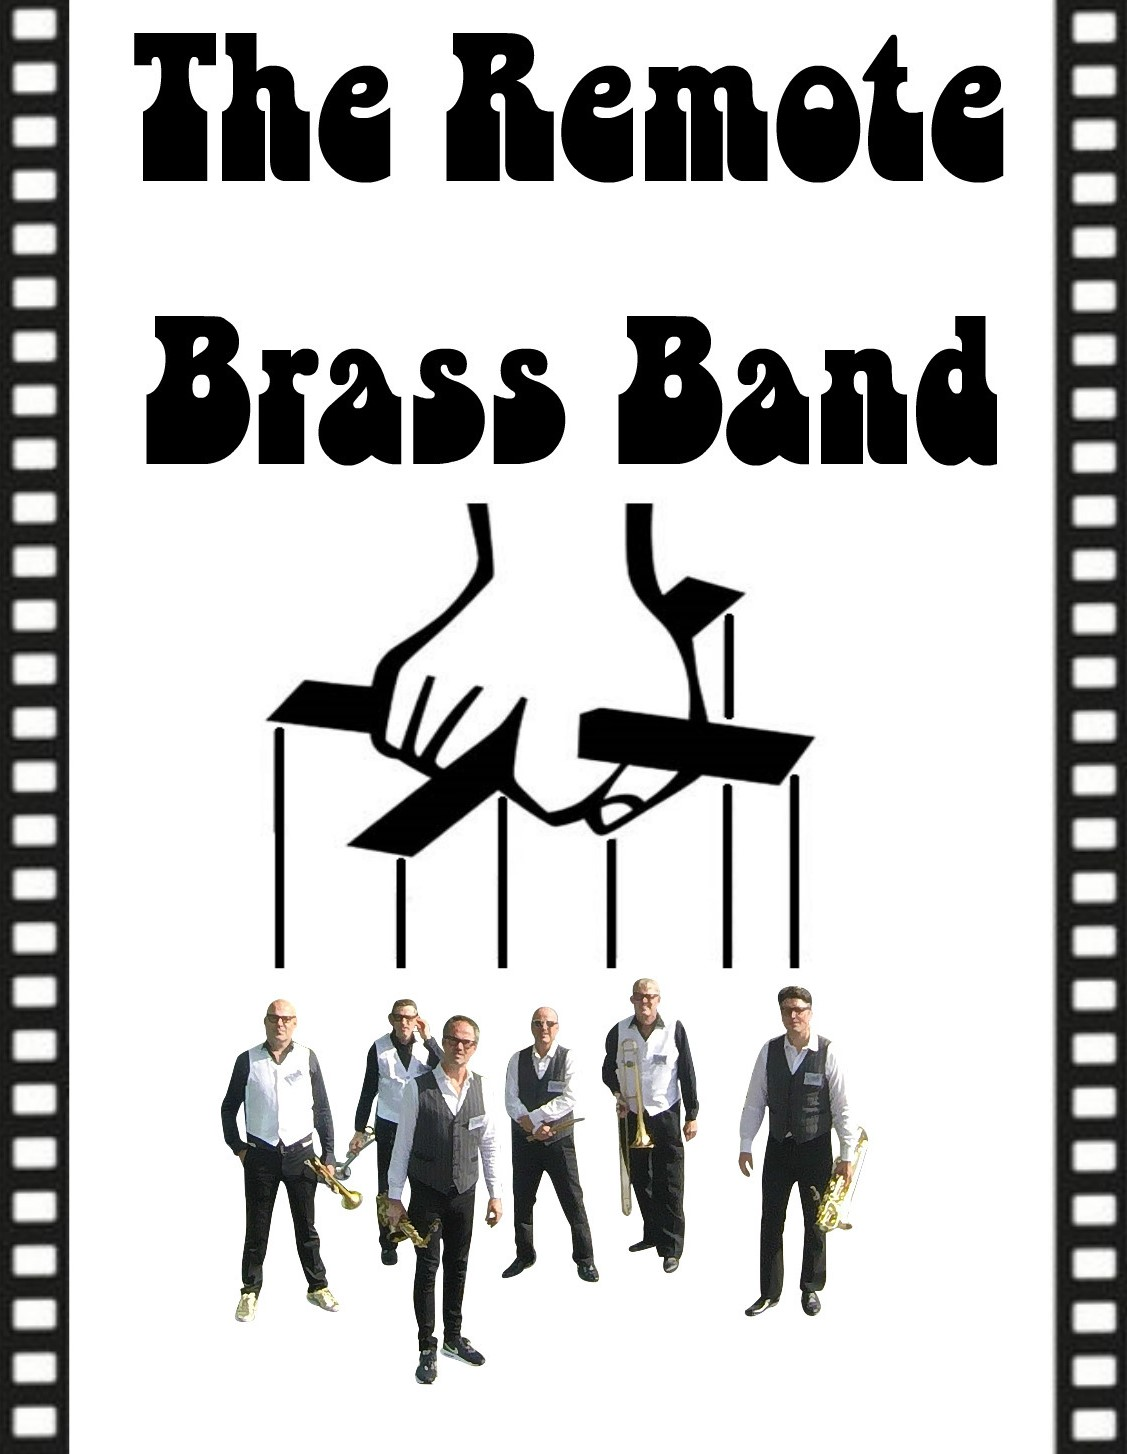 the Remote - Don Corleone - Brass Band